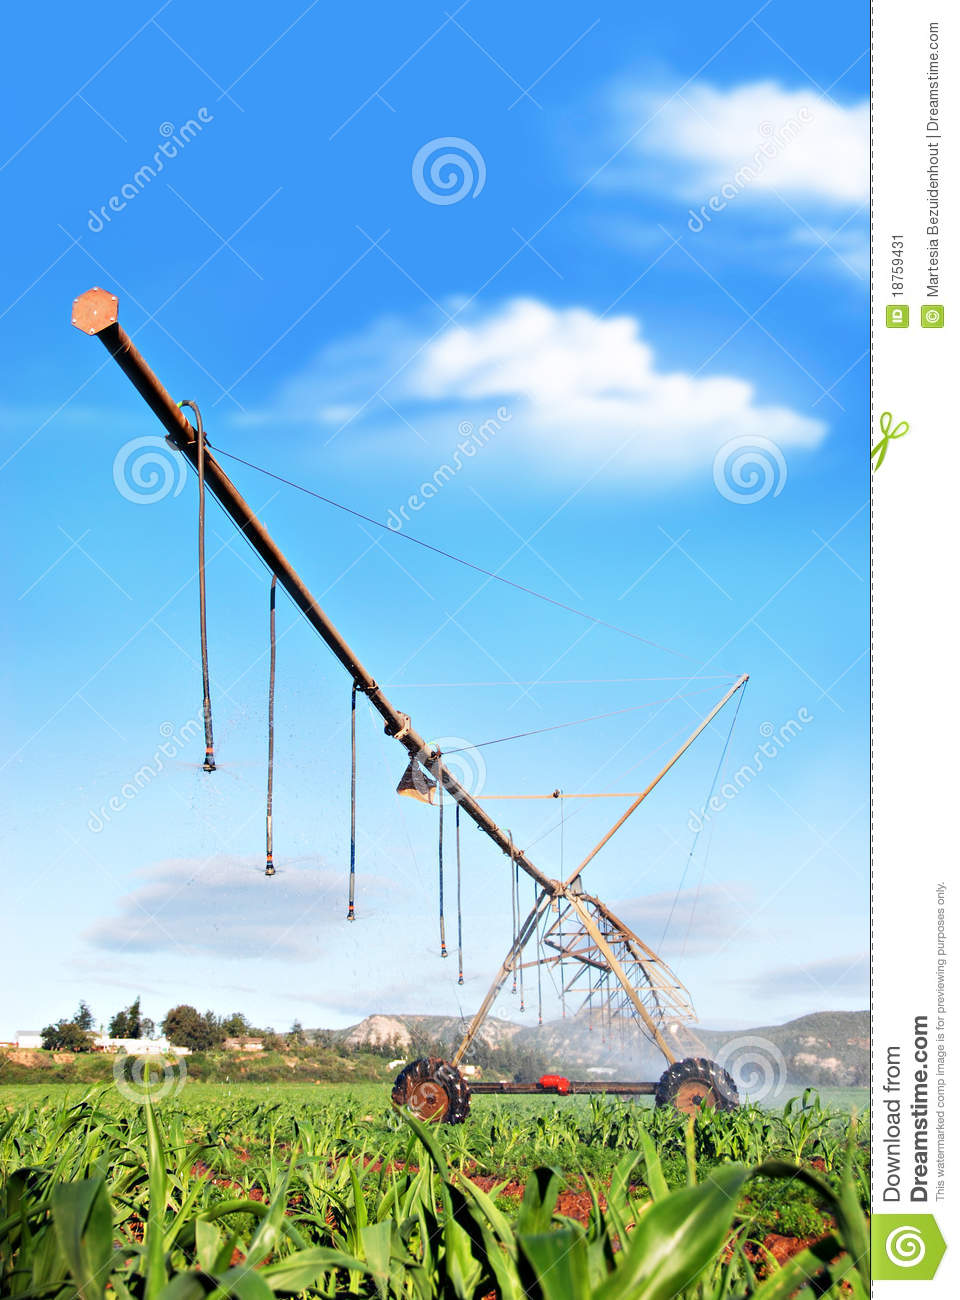 Modern Irrigation System Watering A Farm Field Stock Image - Image ...